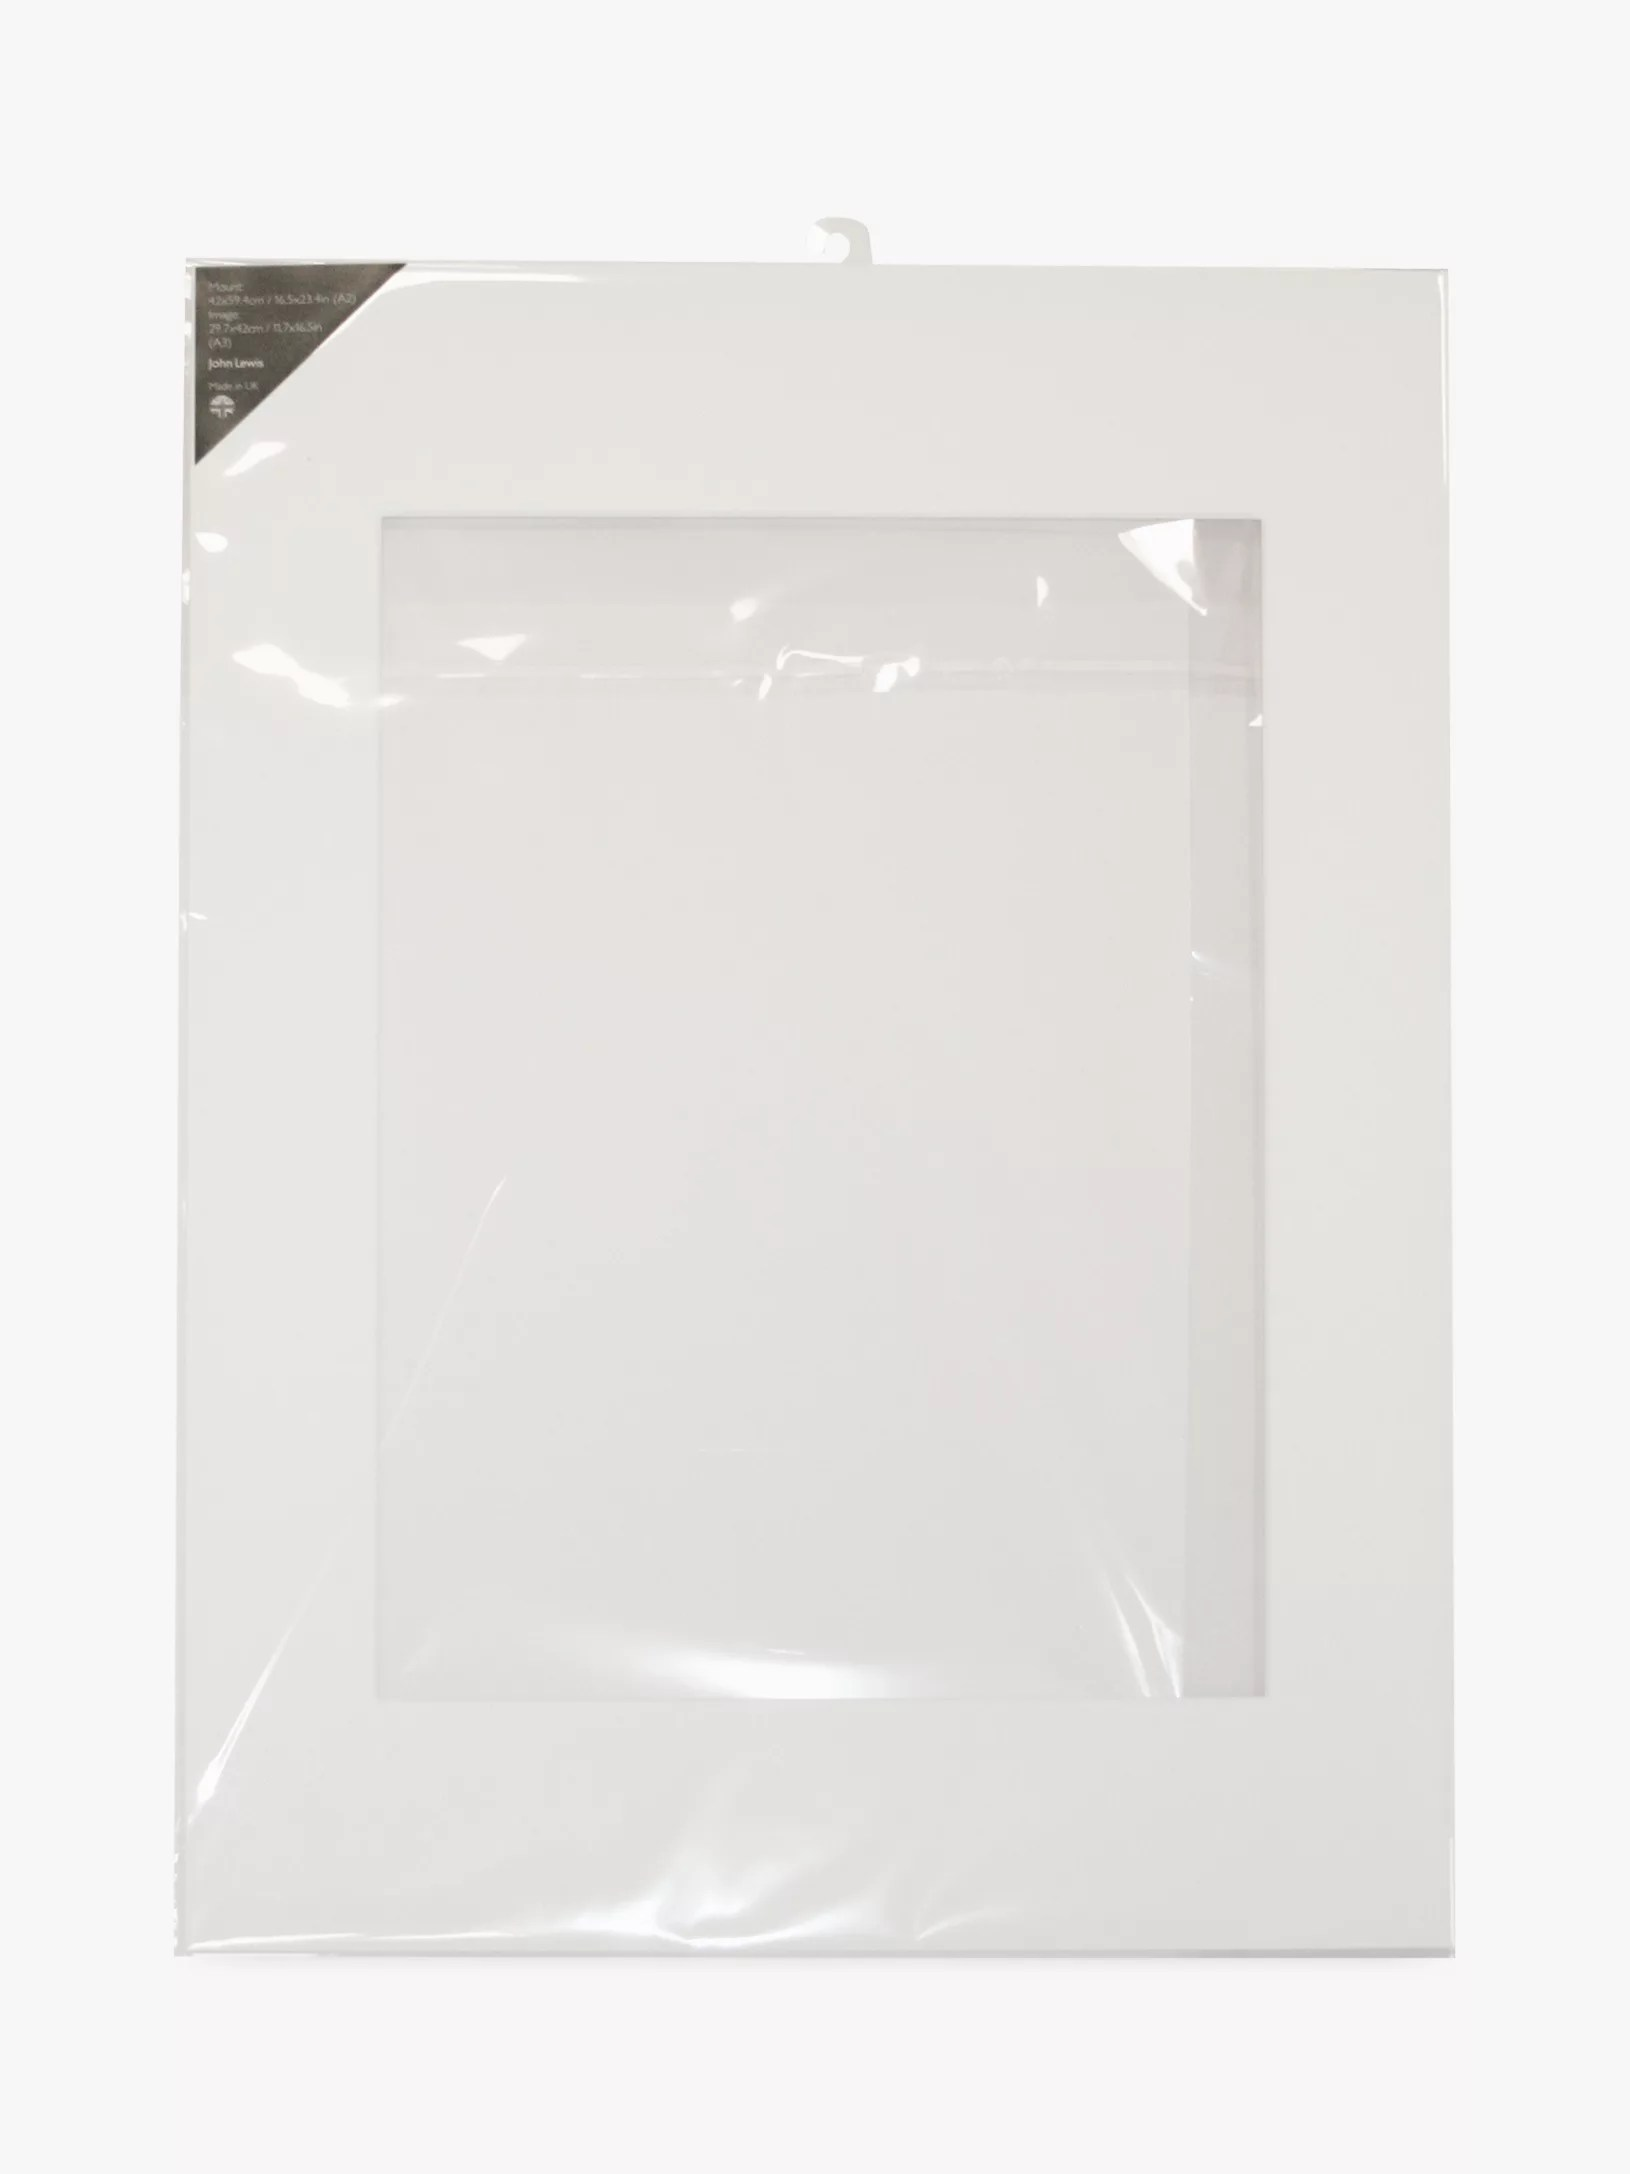 A2 White Frame John Lewis Partners Photo Mount A3 30 X 42cm Image For A2